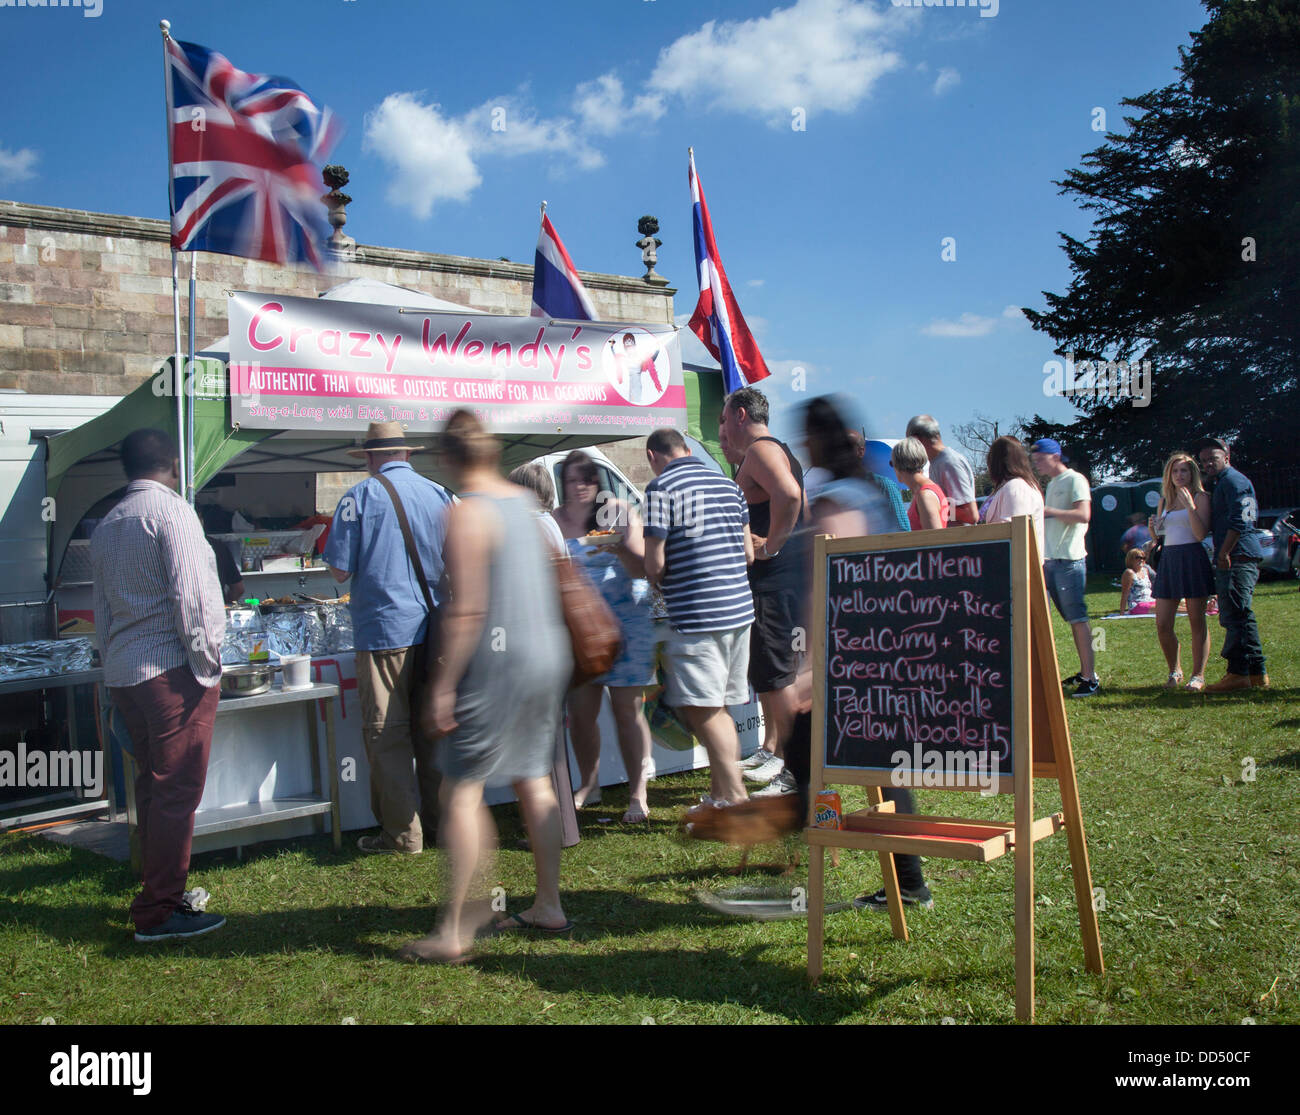 Stonyhurst College, Clitheroe, UK. 26th August, 2013. Crazy Wendys Take-away Thai food at the Great British Food - Stock Image